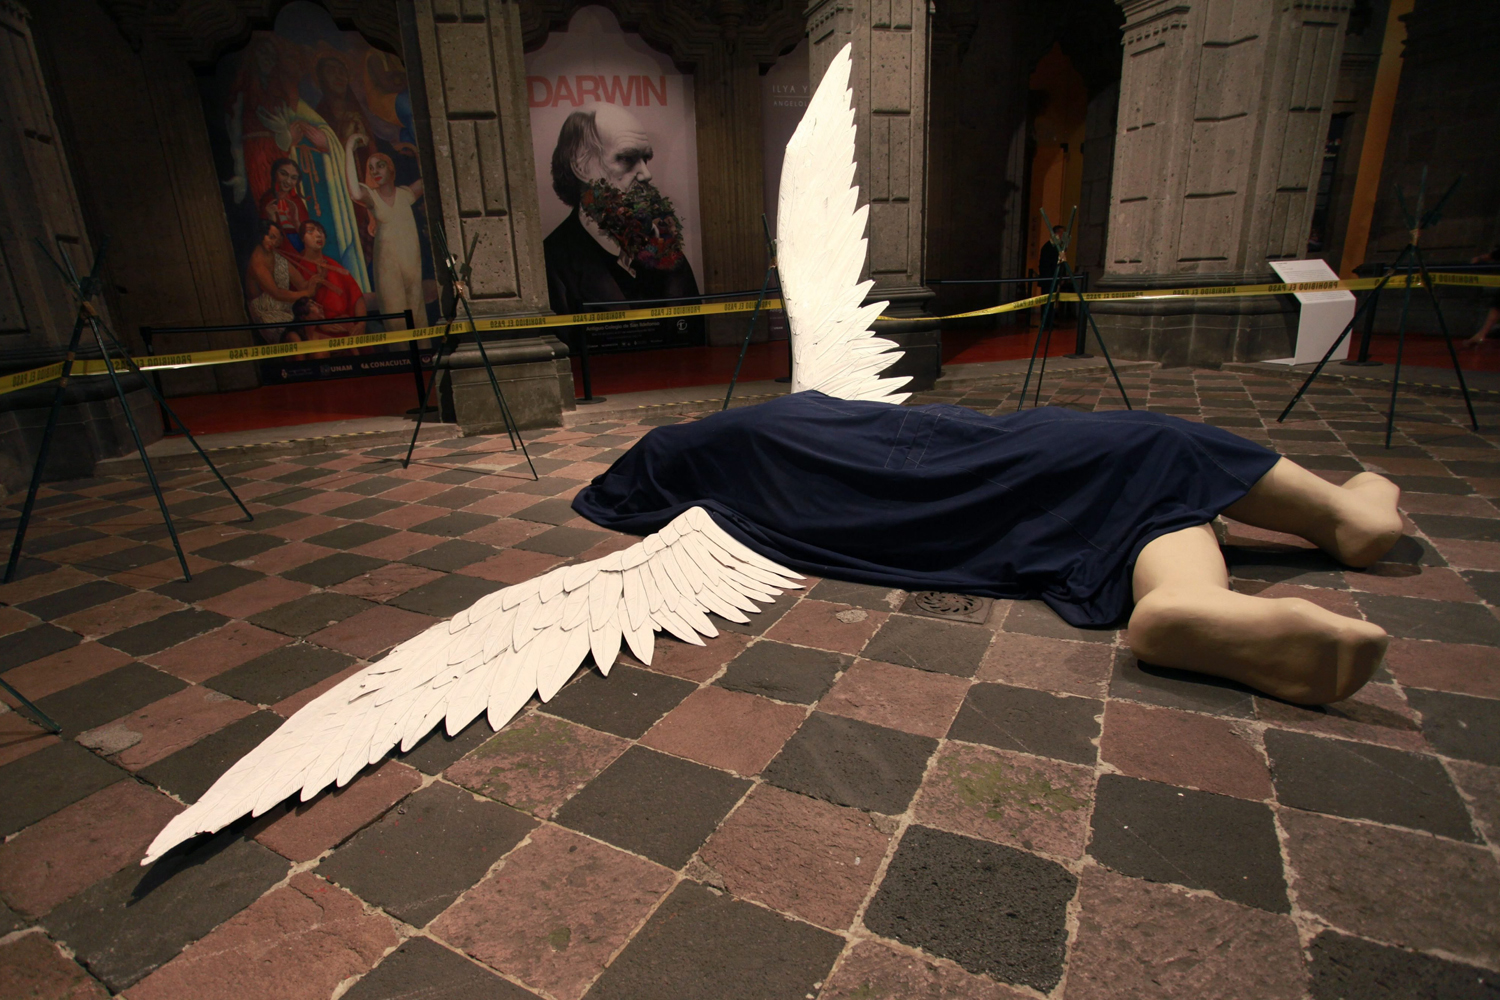 Aug. 27, 2014. View of the artwork 'Fallen Angel' during the exhibition 'Ilya y Emilia Kabakov. Angelogy: Utopia and Angels' by Russian couple artists Ilya y Emilia Kabakov at the former school of San Idelfonso in Mexico City, Mexico.